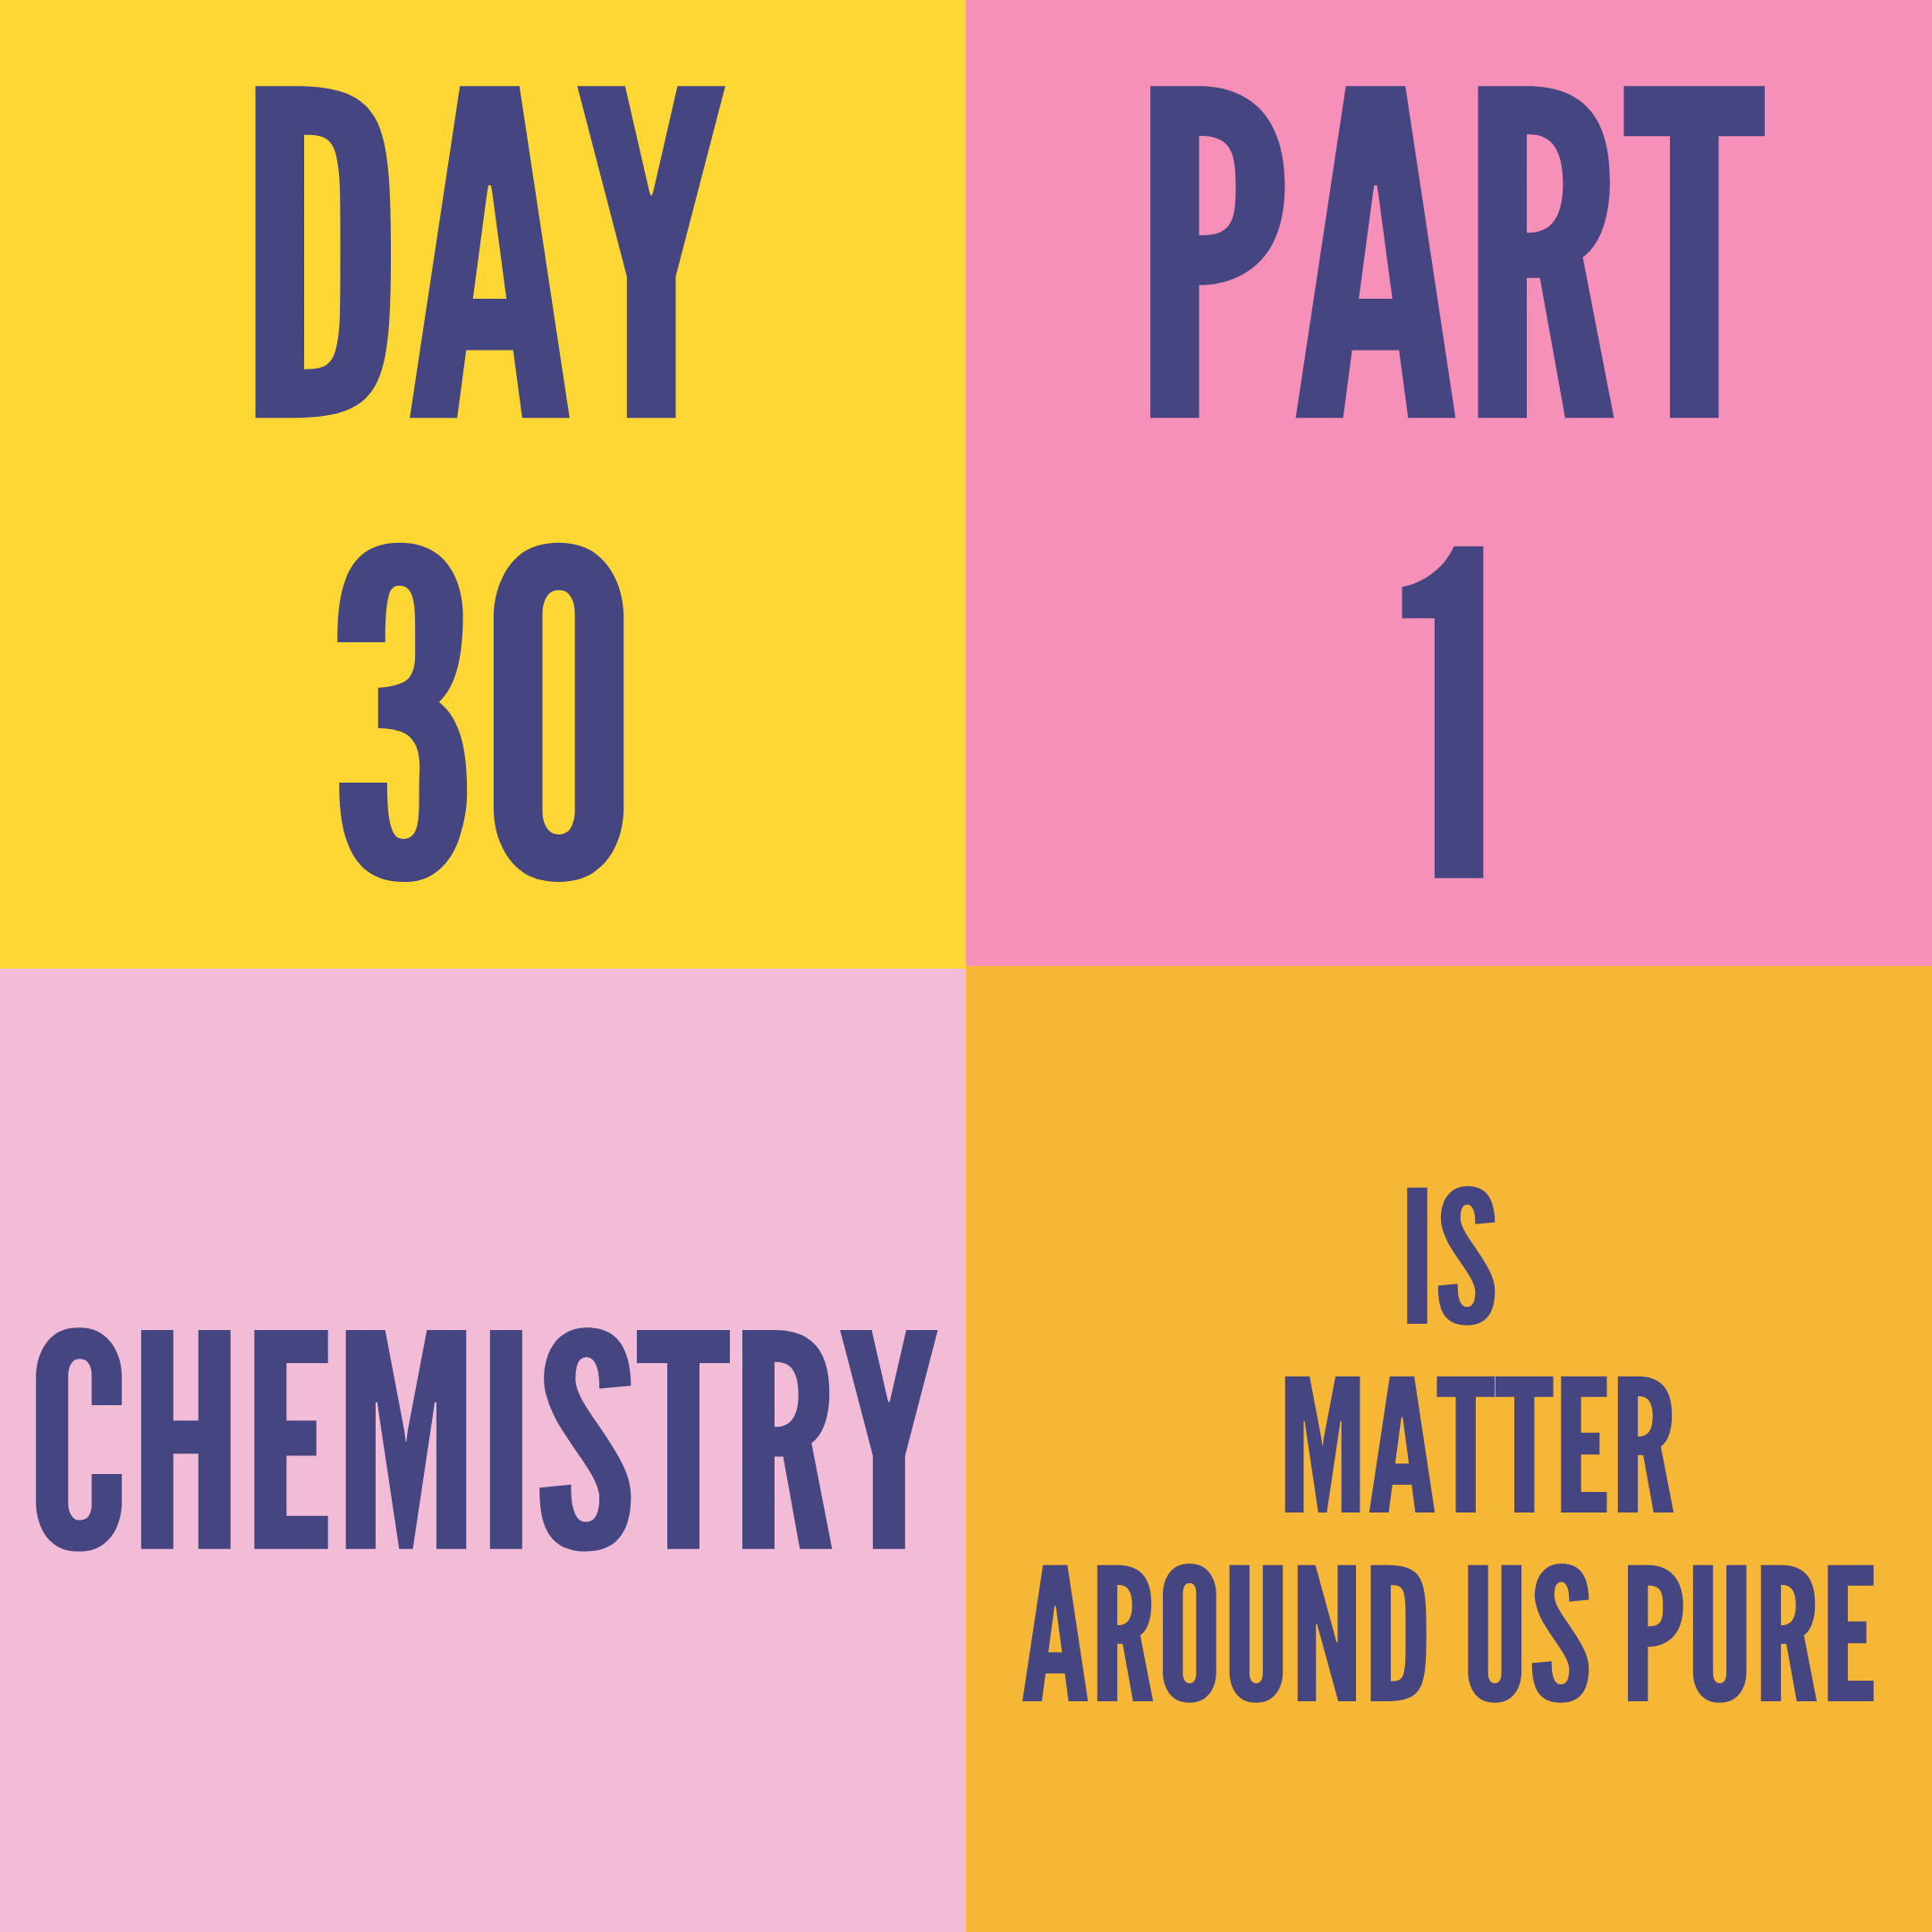 DAY-30 PART-1 IS MATTER AROUND US PURE